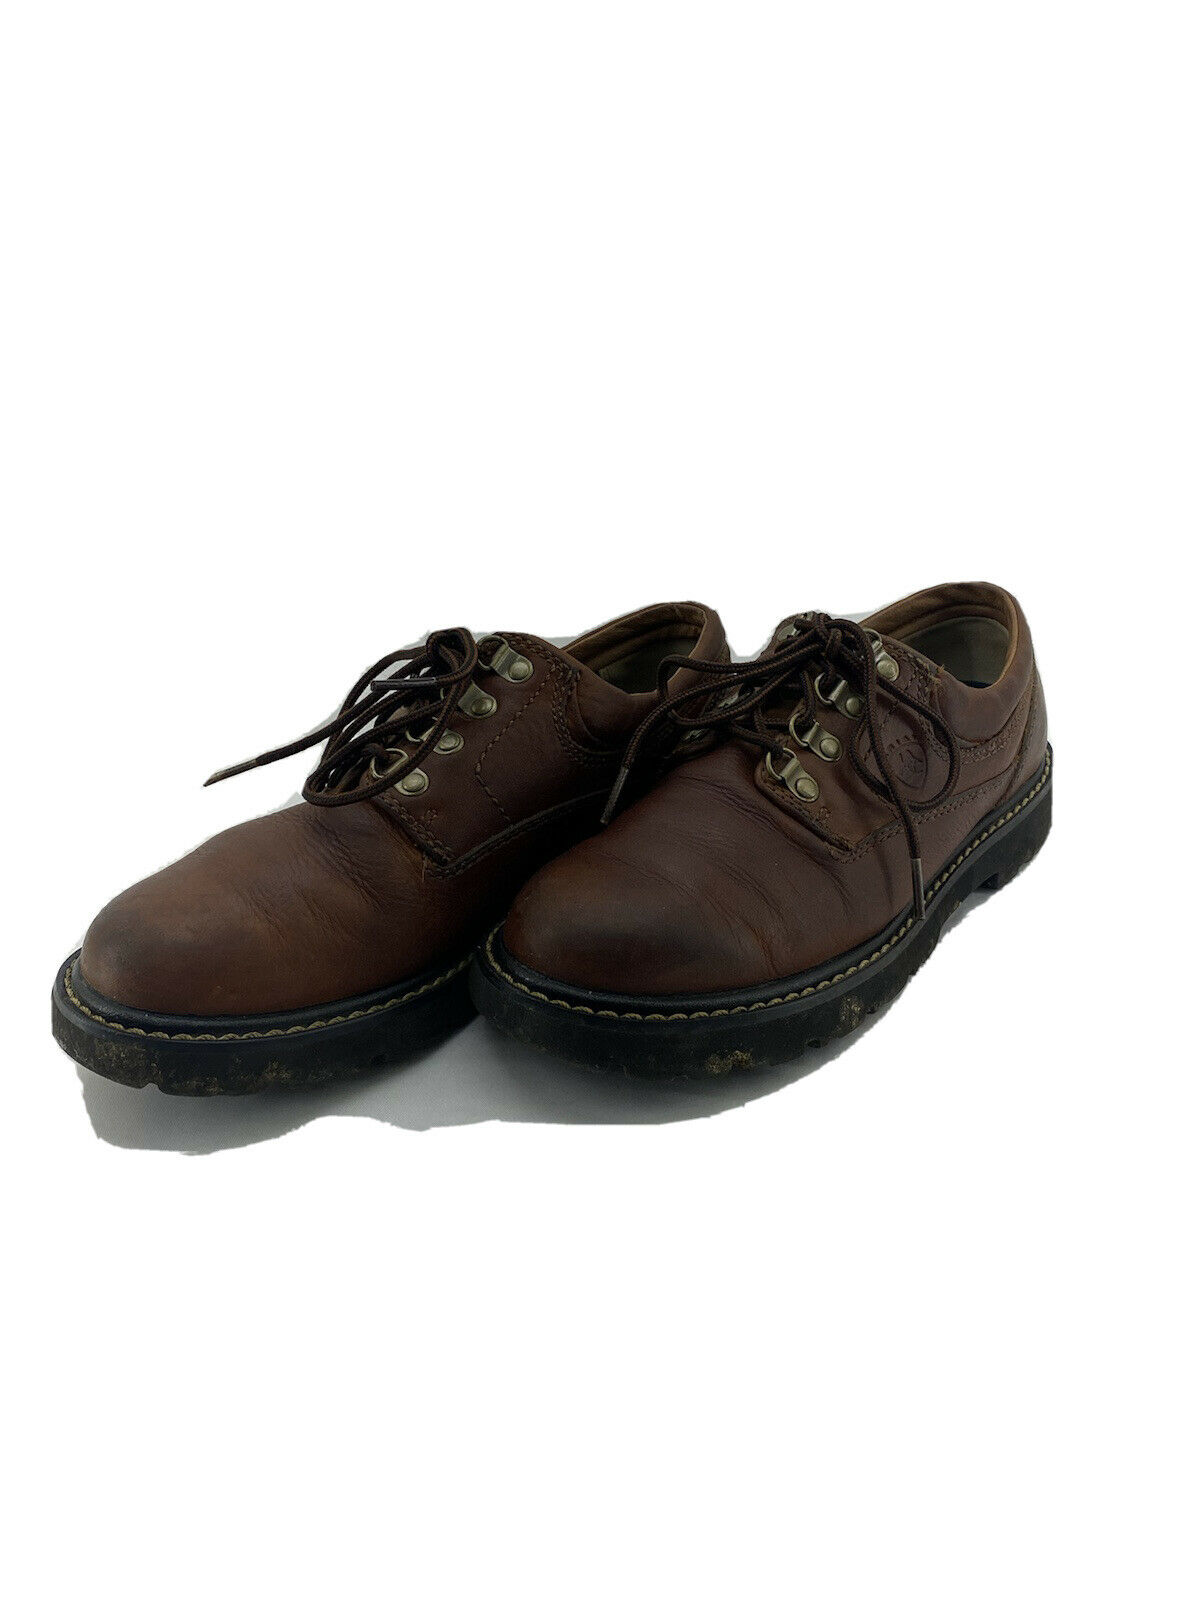 ariat womens leather hiking trail shoes 9 B brown